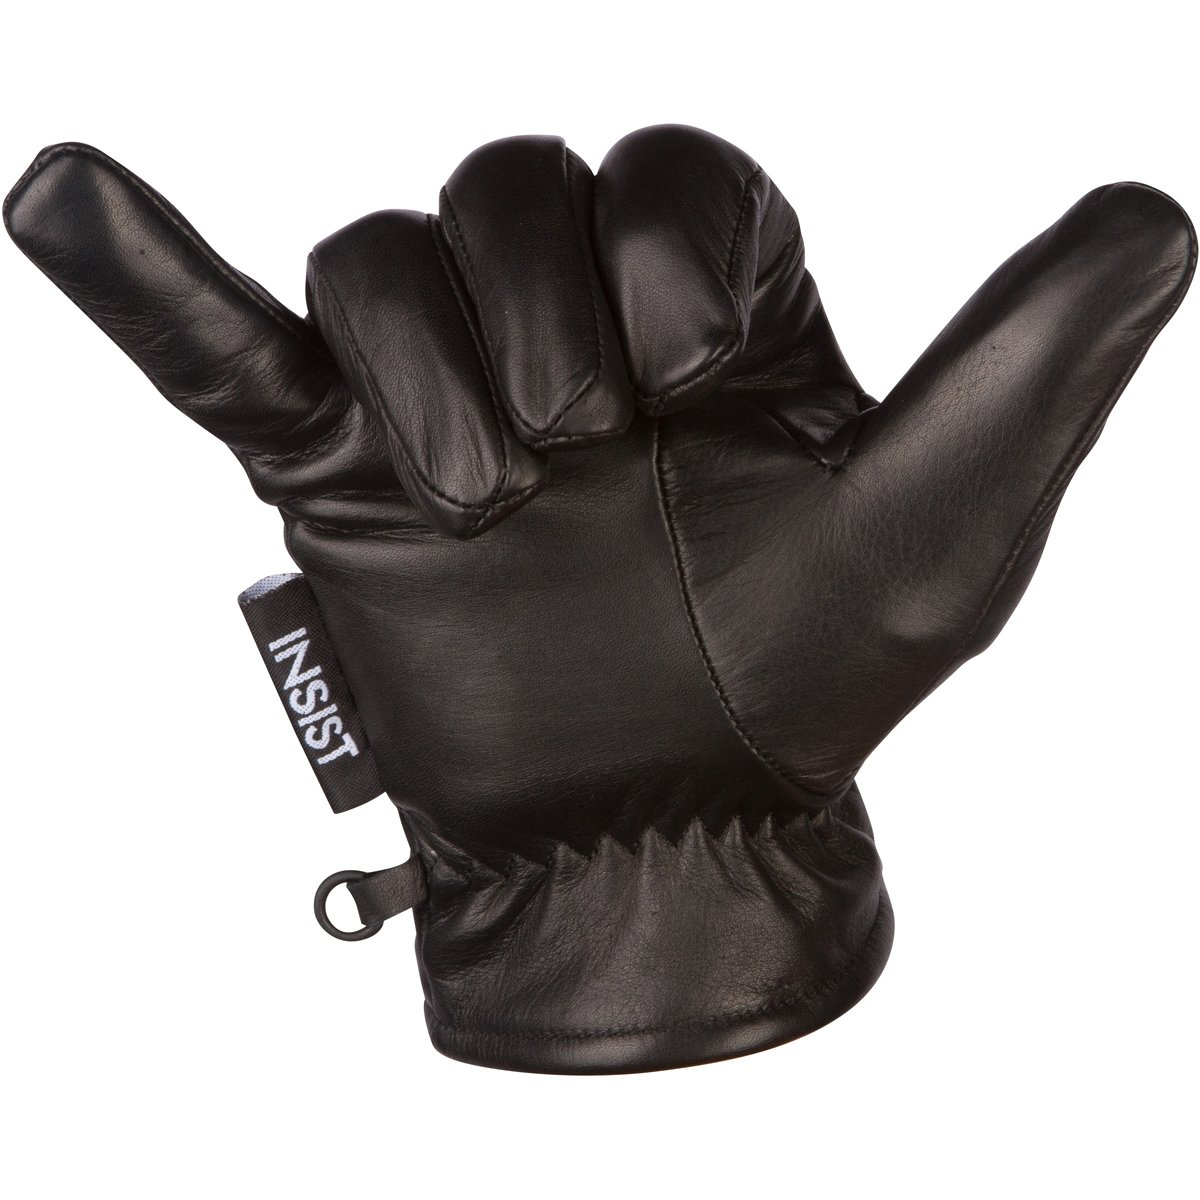 Insist Gear Liner Notes Leather lined motorcycle gloves (X-Large)